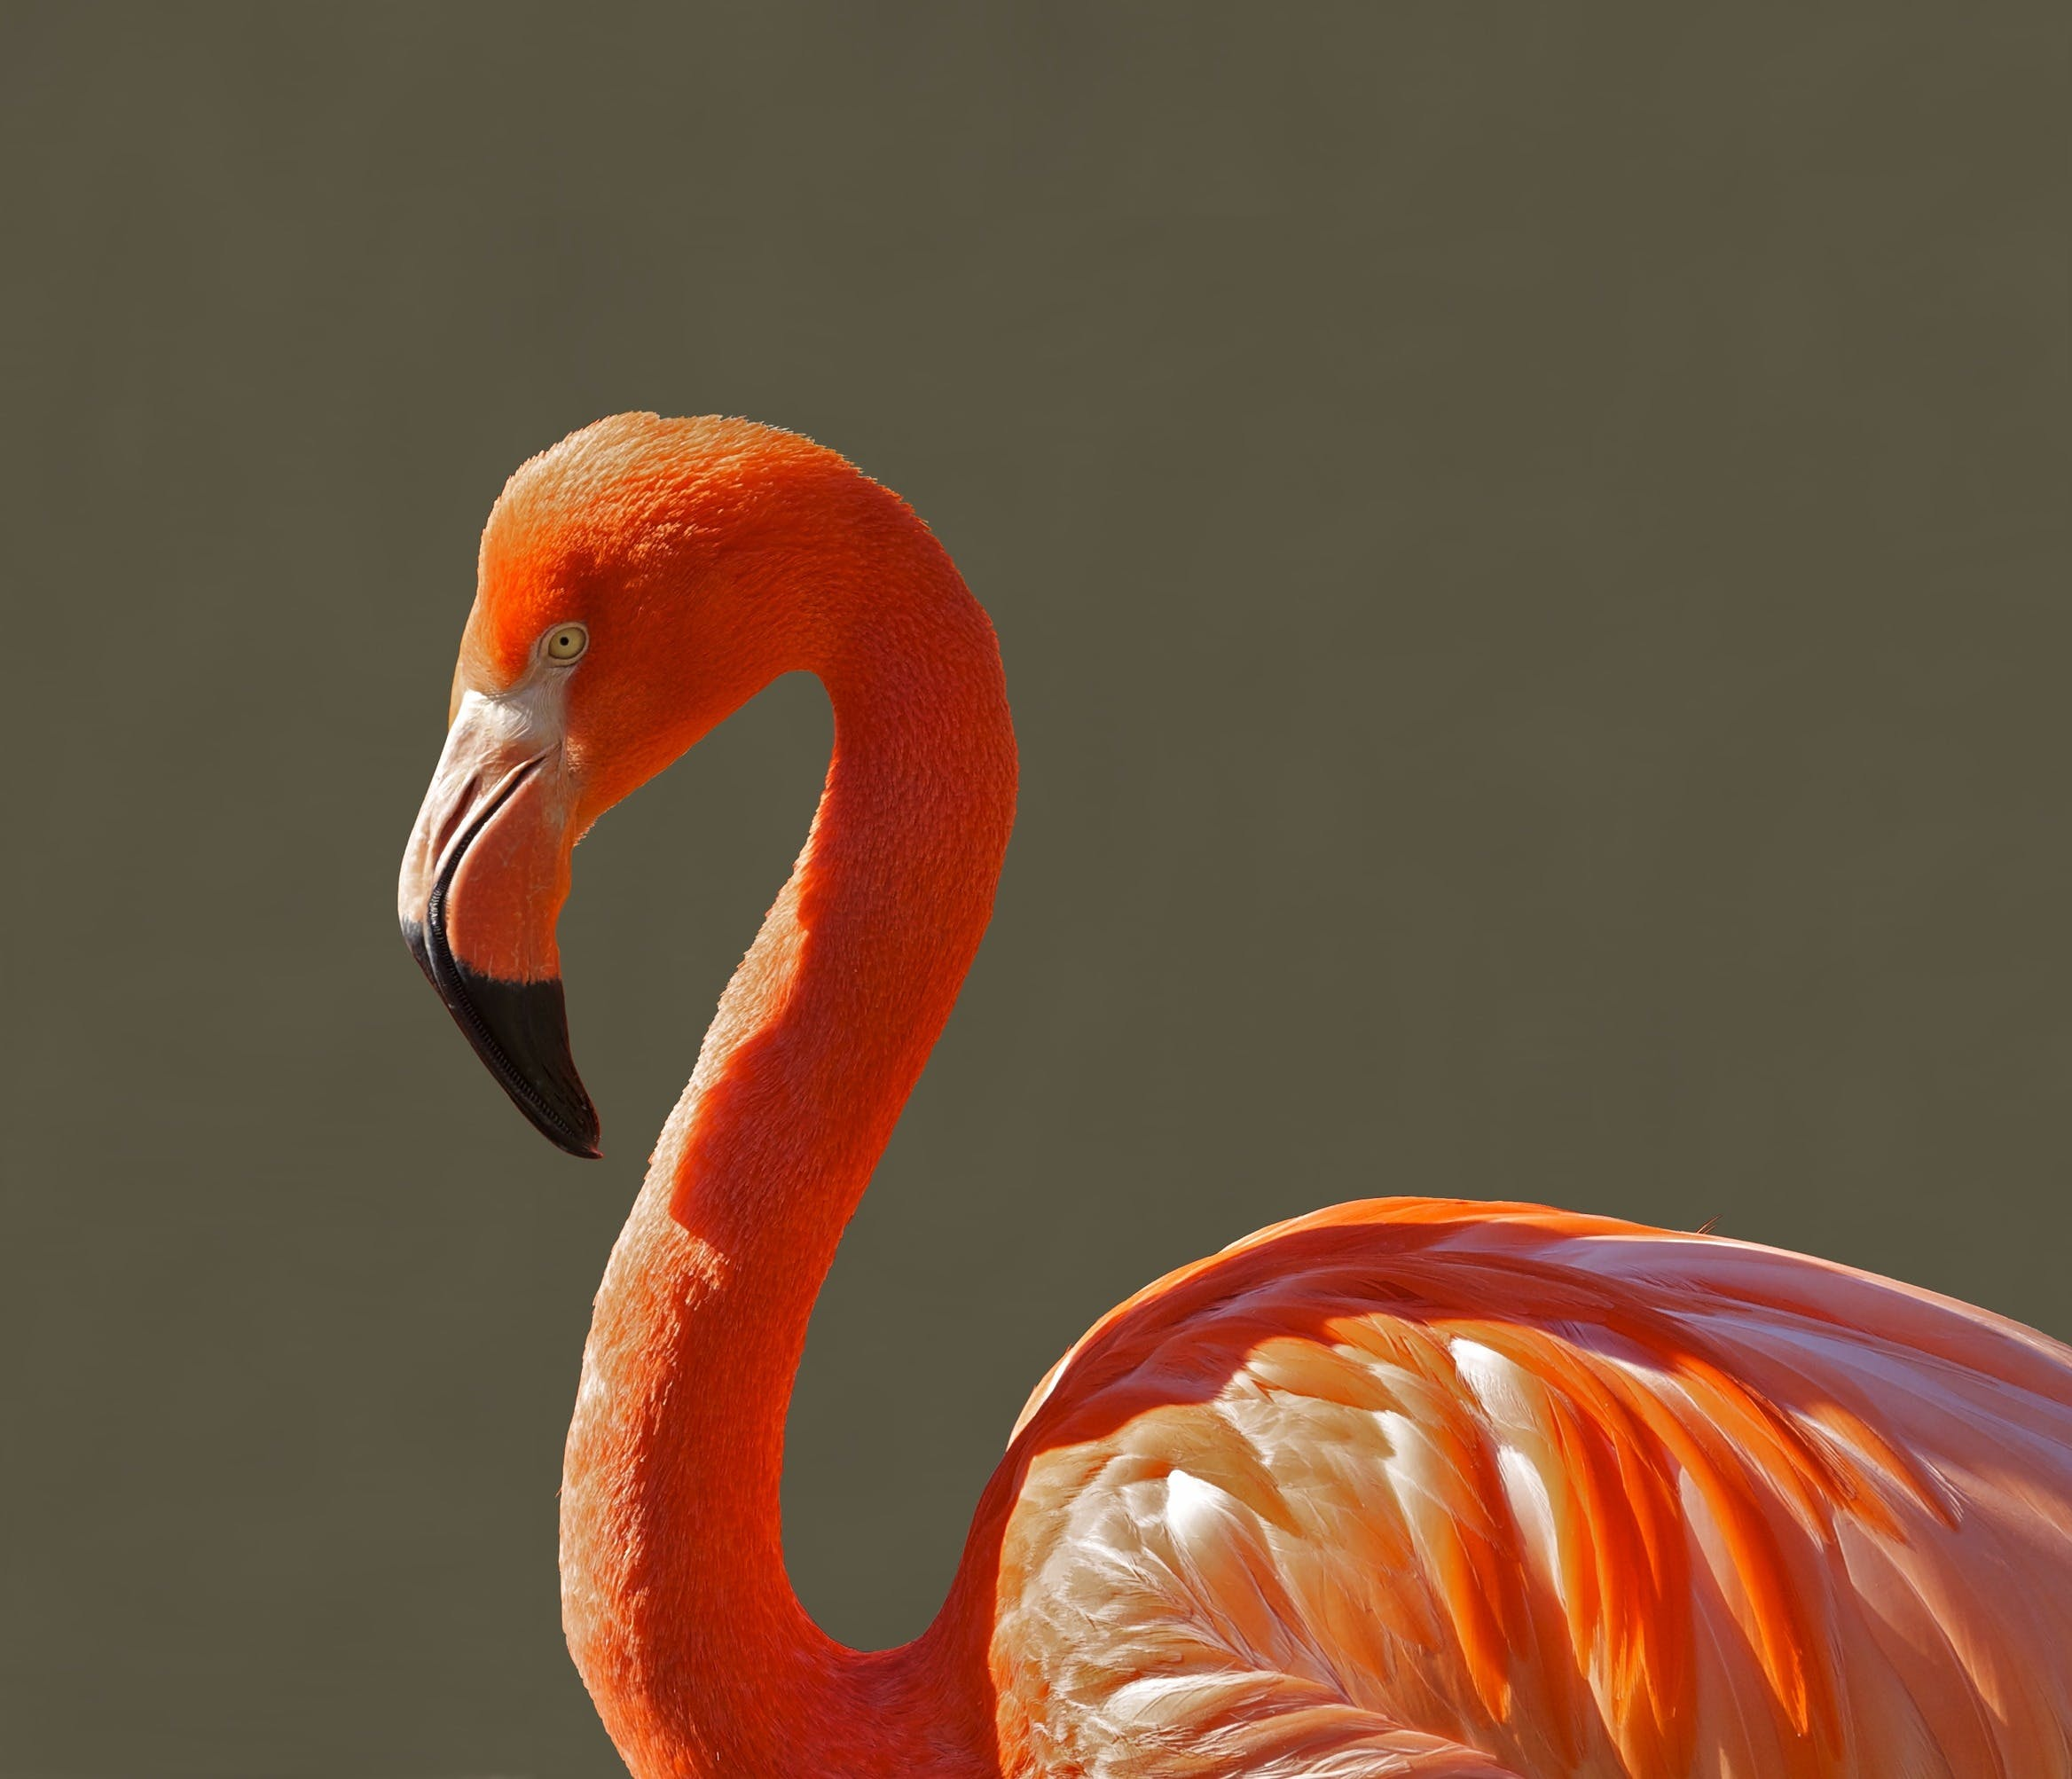 Gratis lagerfoto af close-up, dyr, dyrefotografering, flamingo